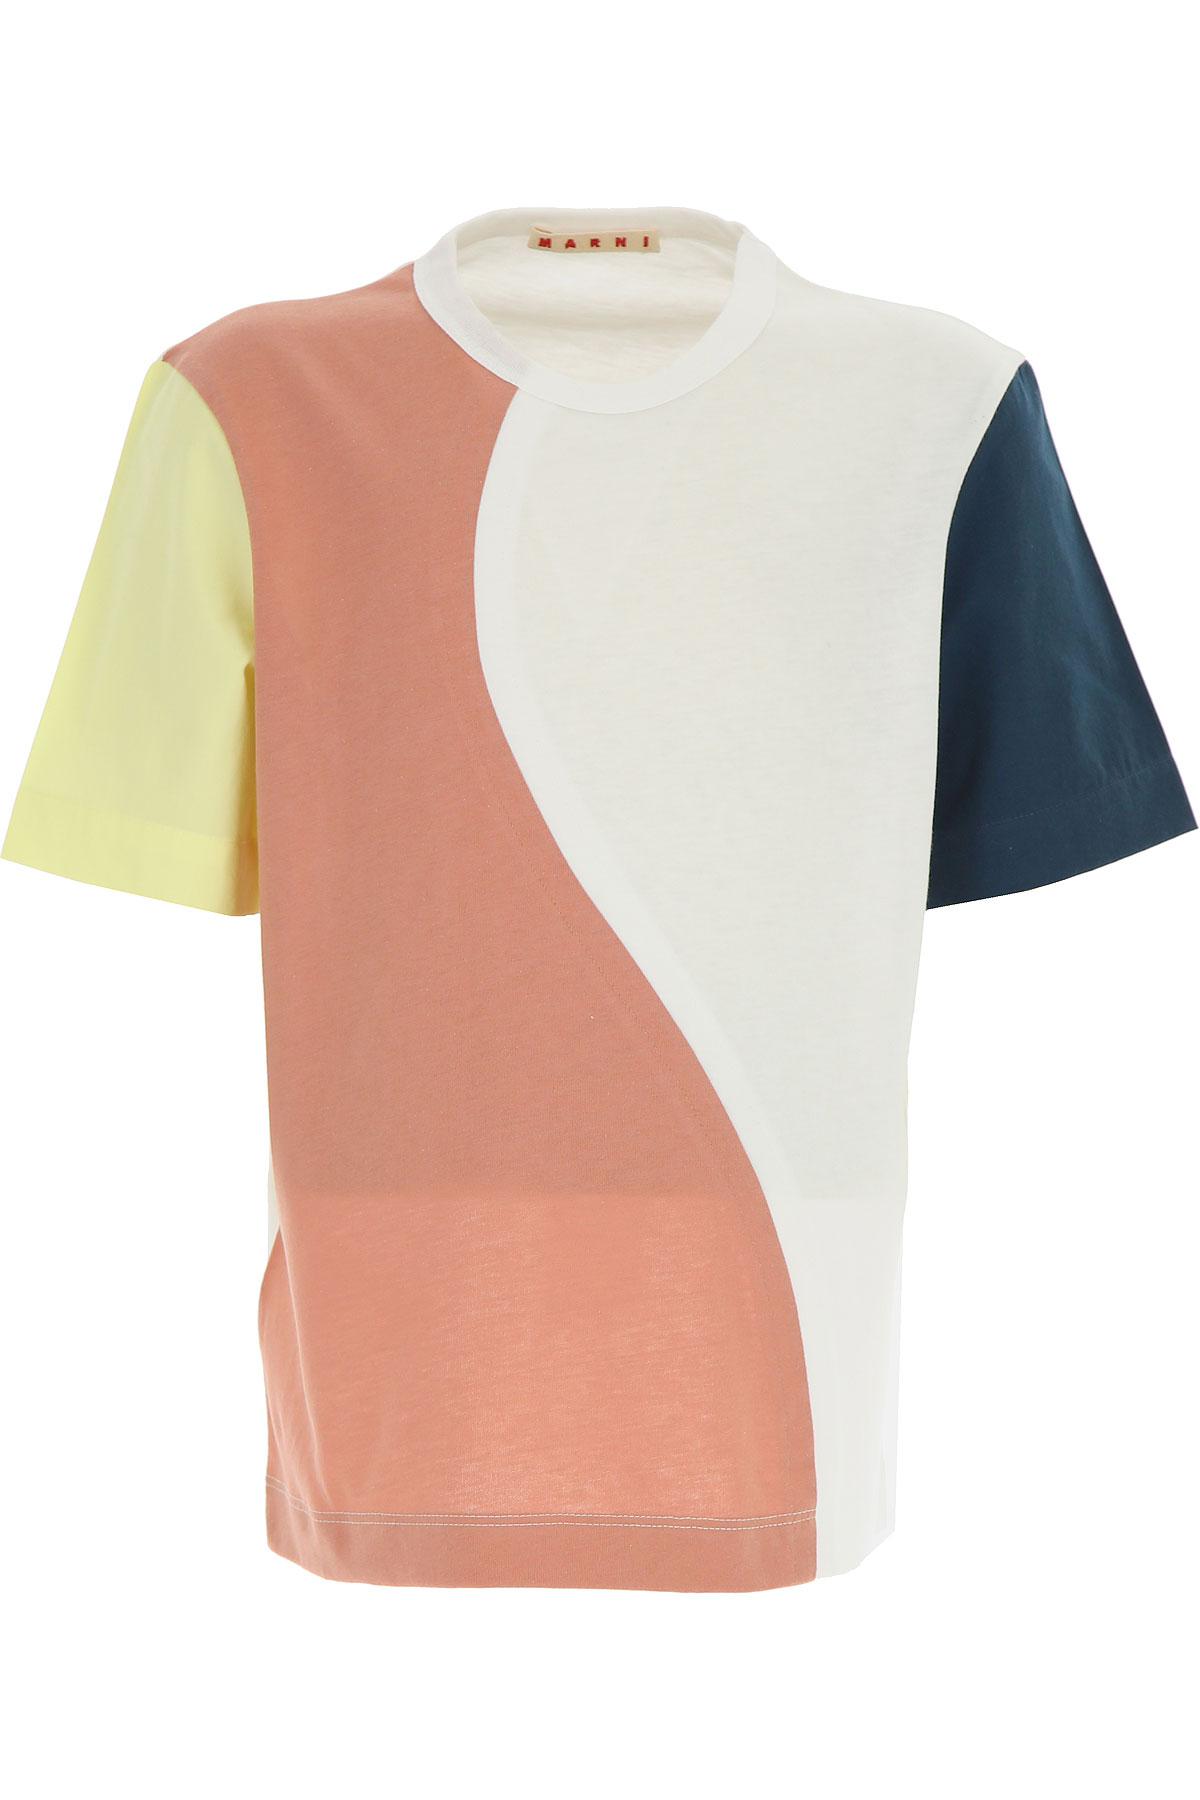 Image of Marni Kids T-Shirt for Girls, White, Cotton, 2017, 10Y 14Y 8Y